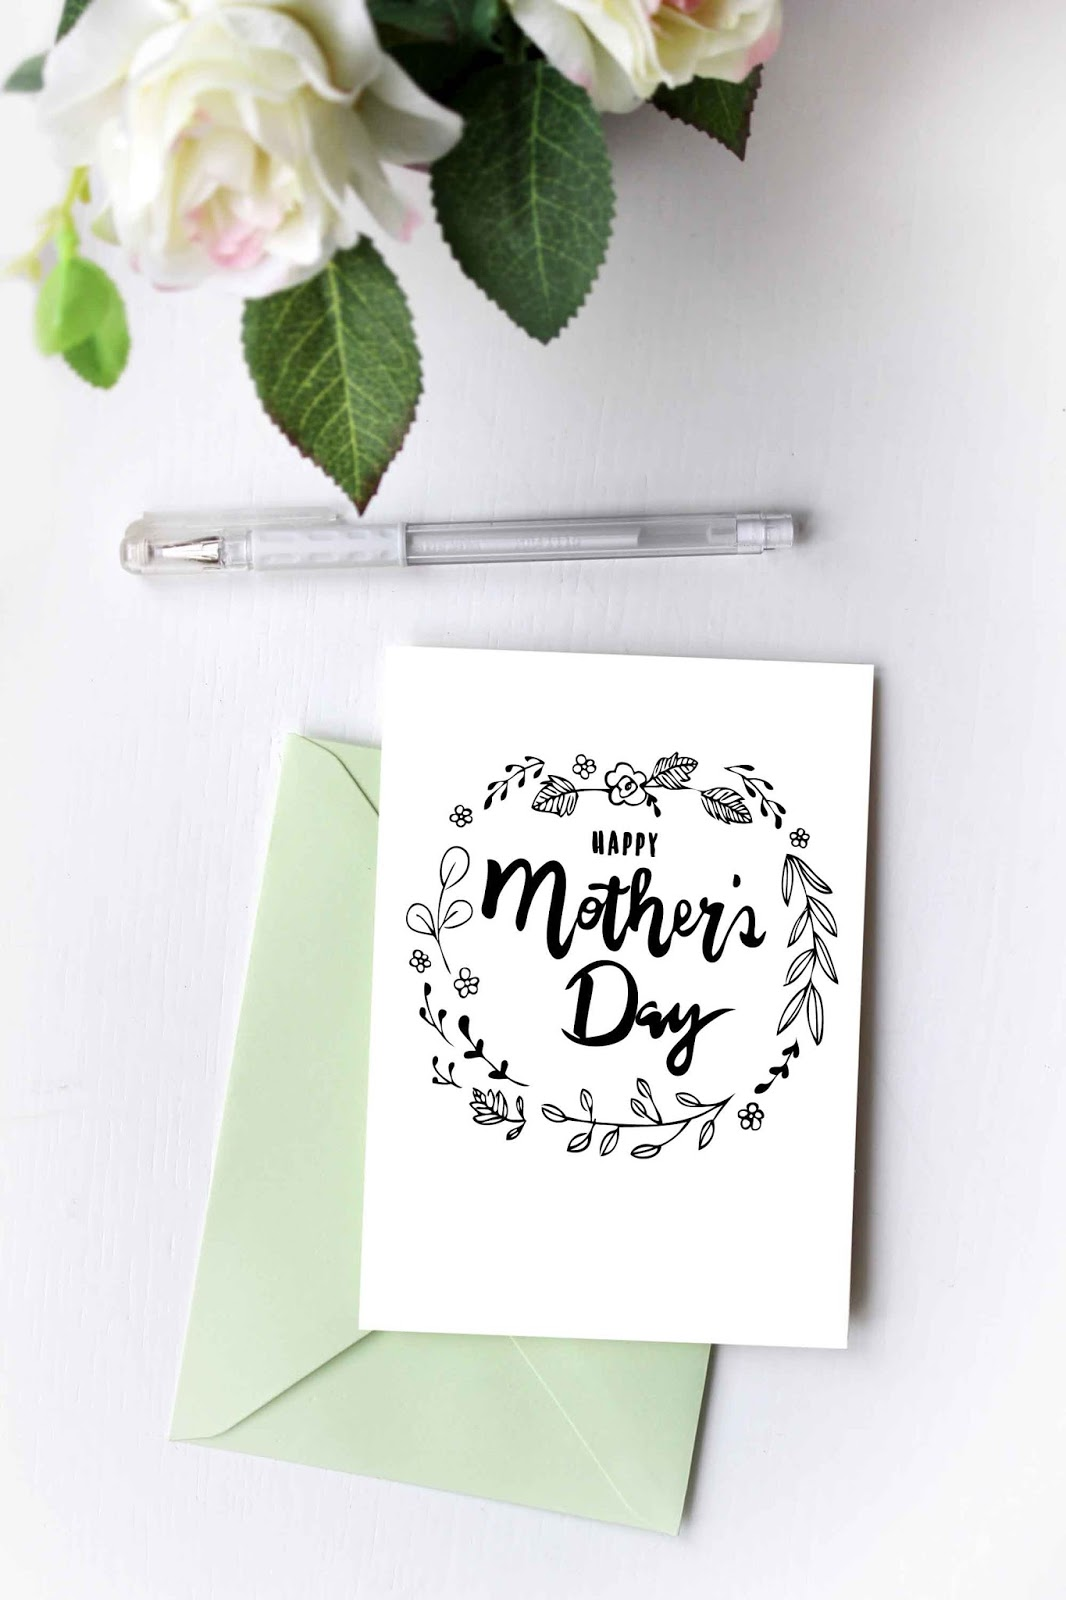 photograph regarding Happy Mothers Day Printable Cards identify Do-it-yourself Joyful Moms Working day Card Colouring Printable - Ting and